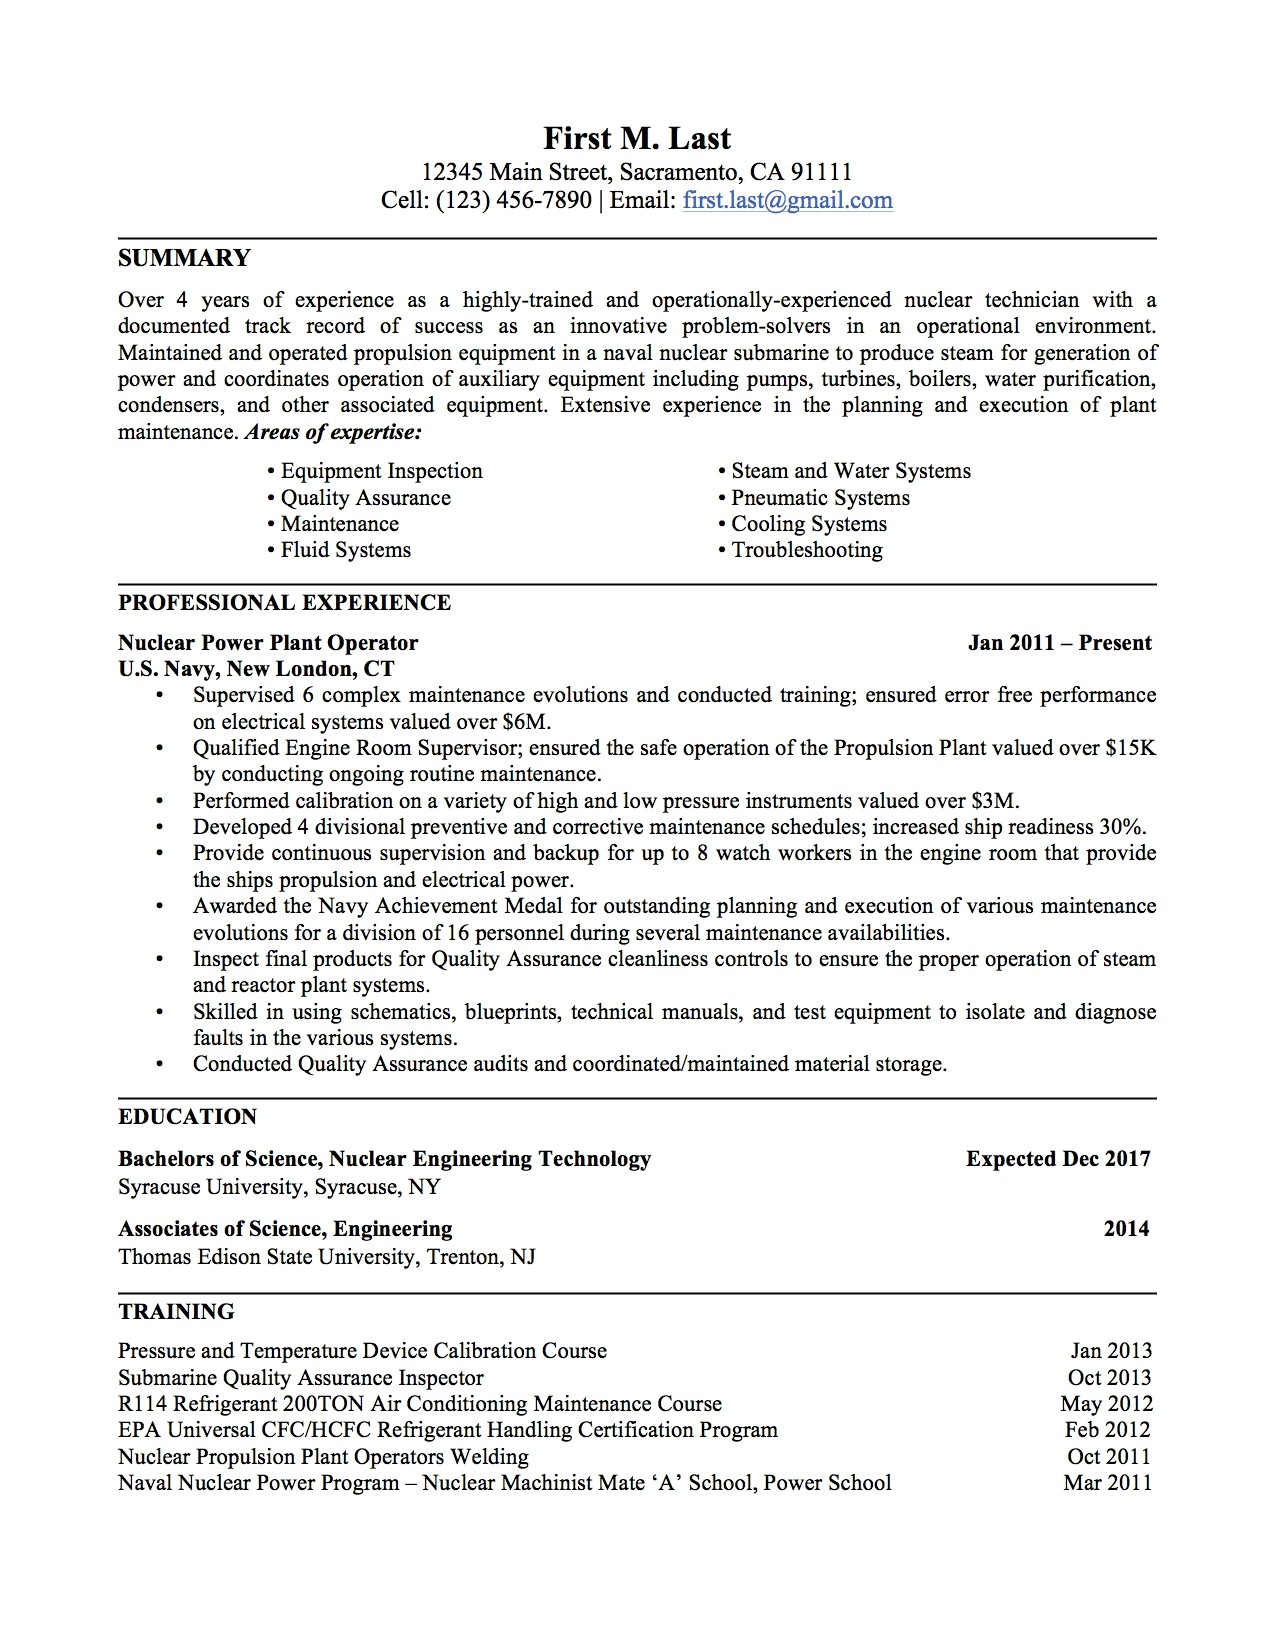 Resume Template Military Experience Military to Civilian Resume Amplifiermountain org